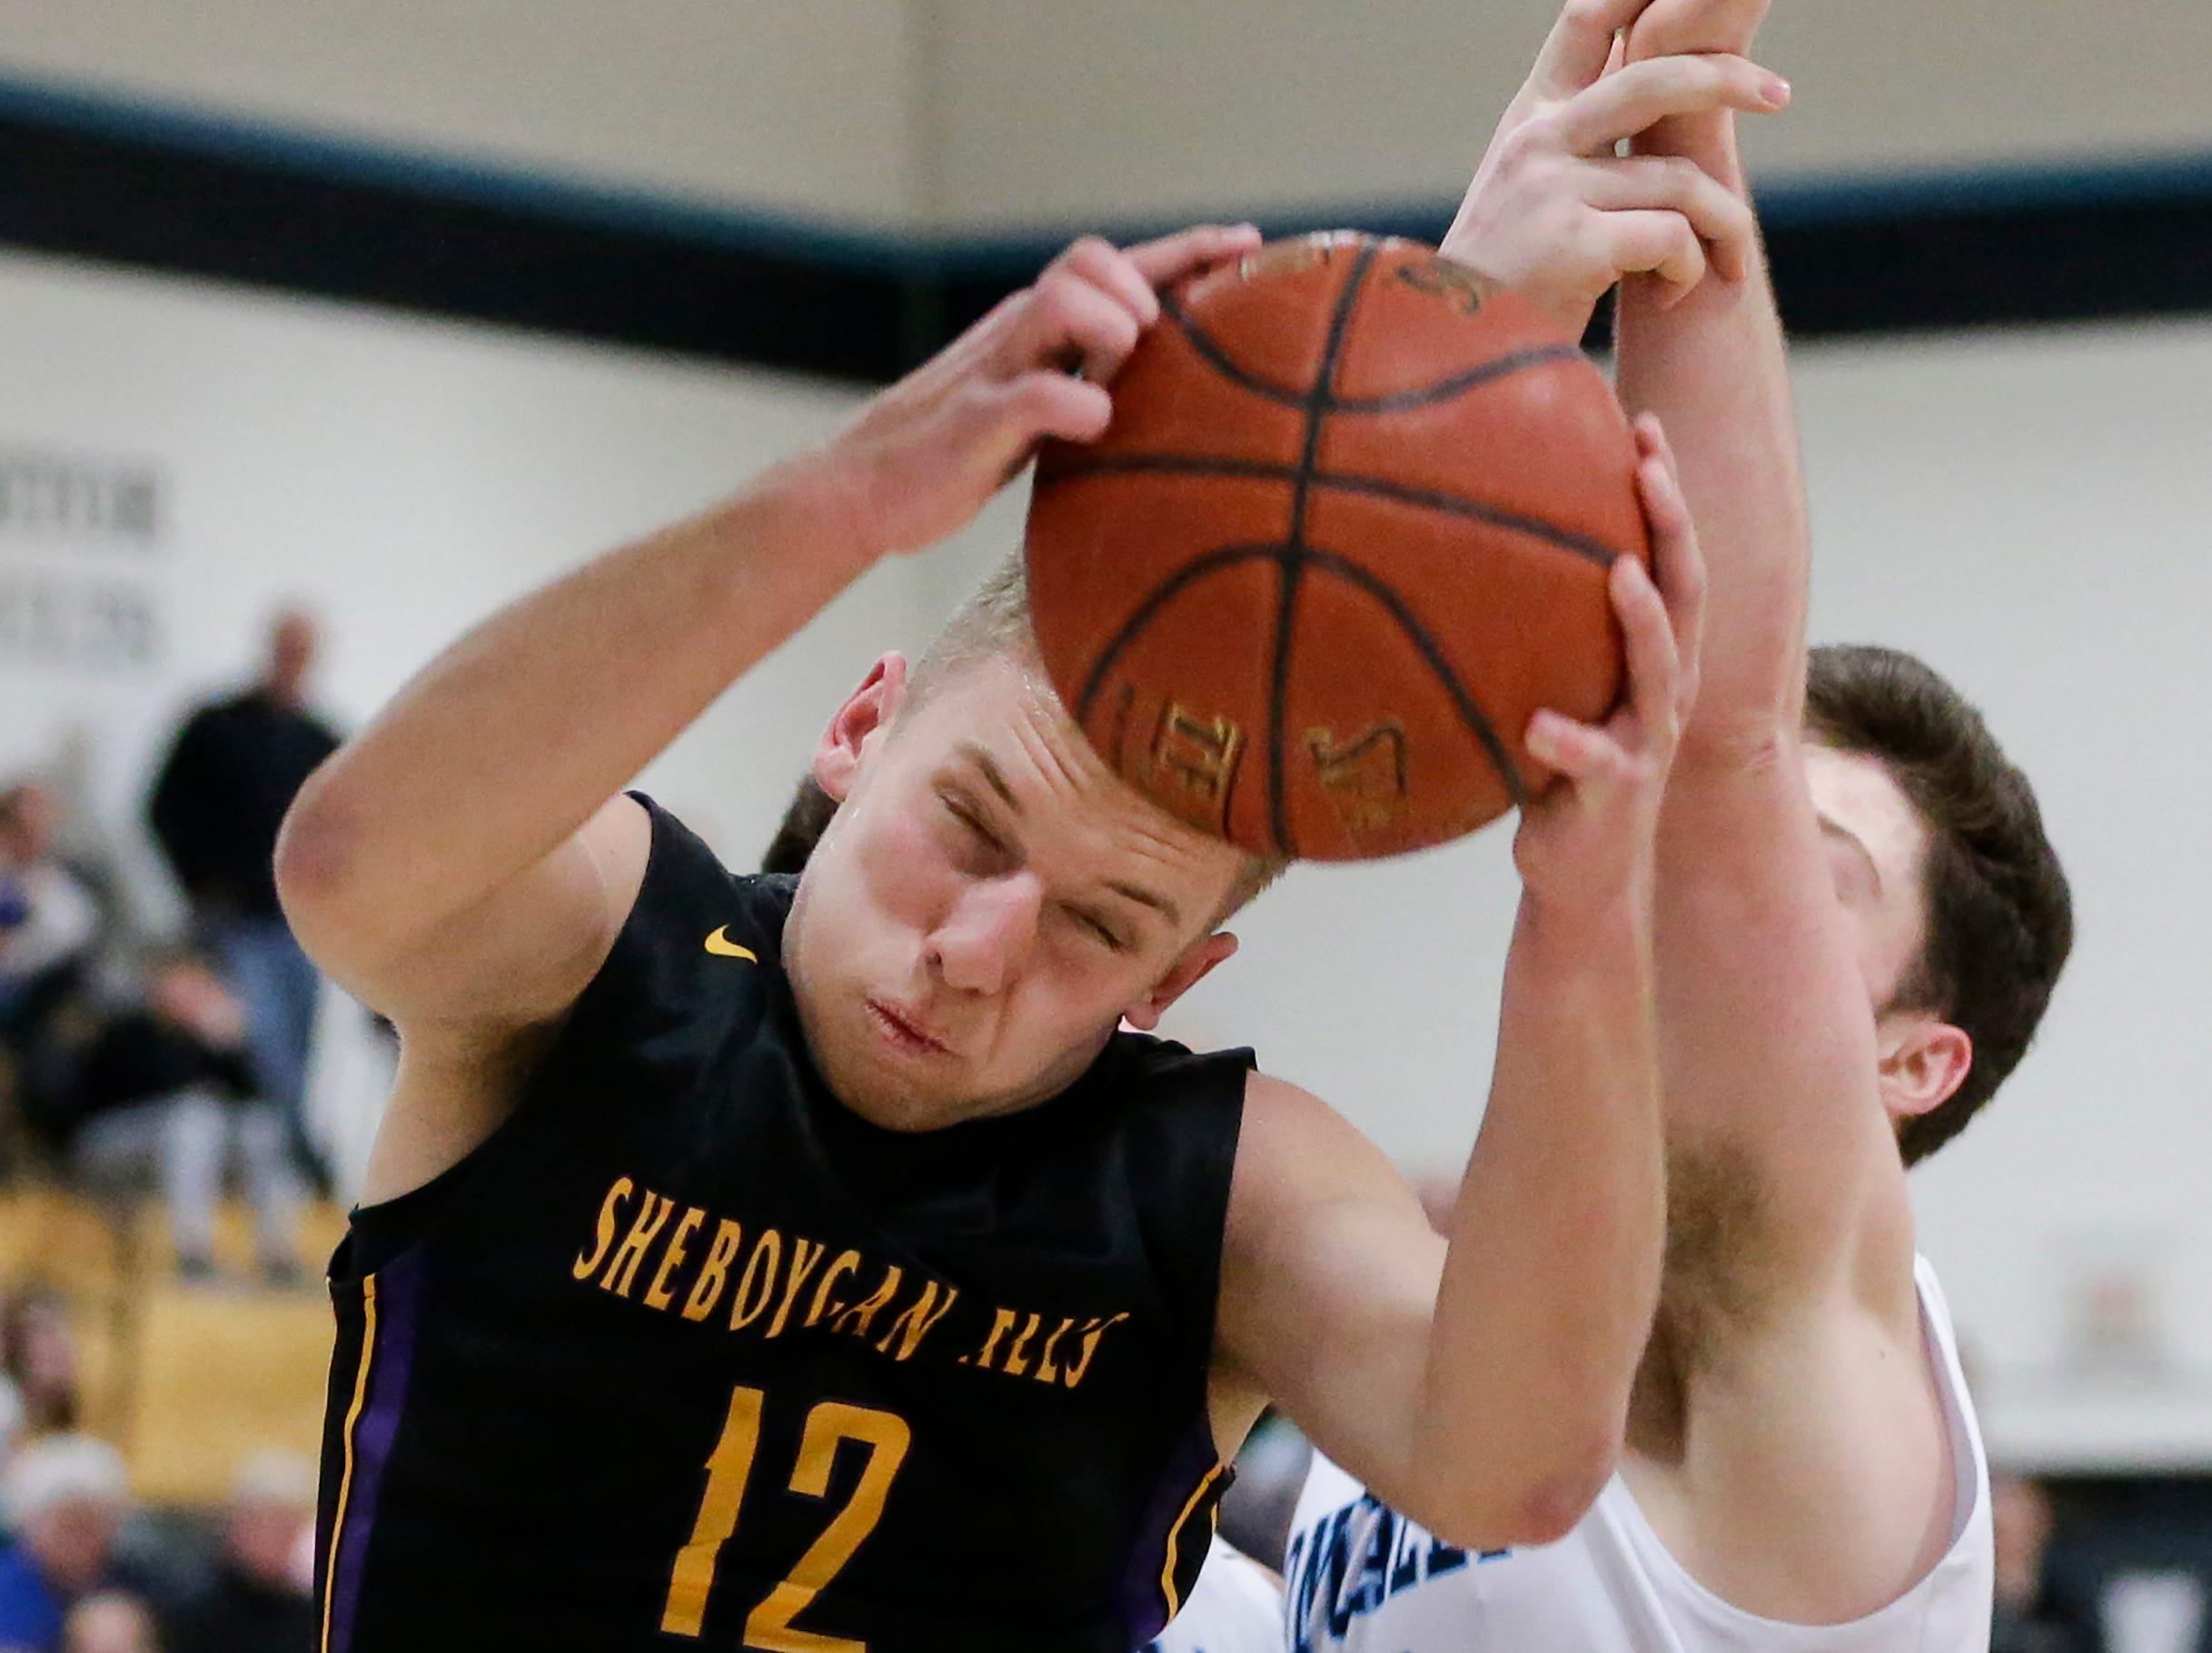 Sheboygan Falls' Langdon Thiel rebounds against Roncalli during an EWC matchup at Roncalli High School Thursday, January 10, 2019, in Manitowoc, Wis. Joshua Clark/USA TODAY NETWORK-Wisconsin